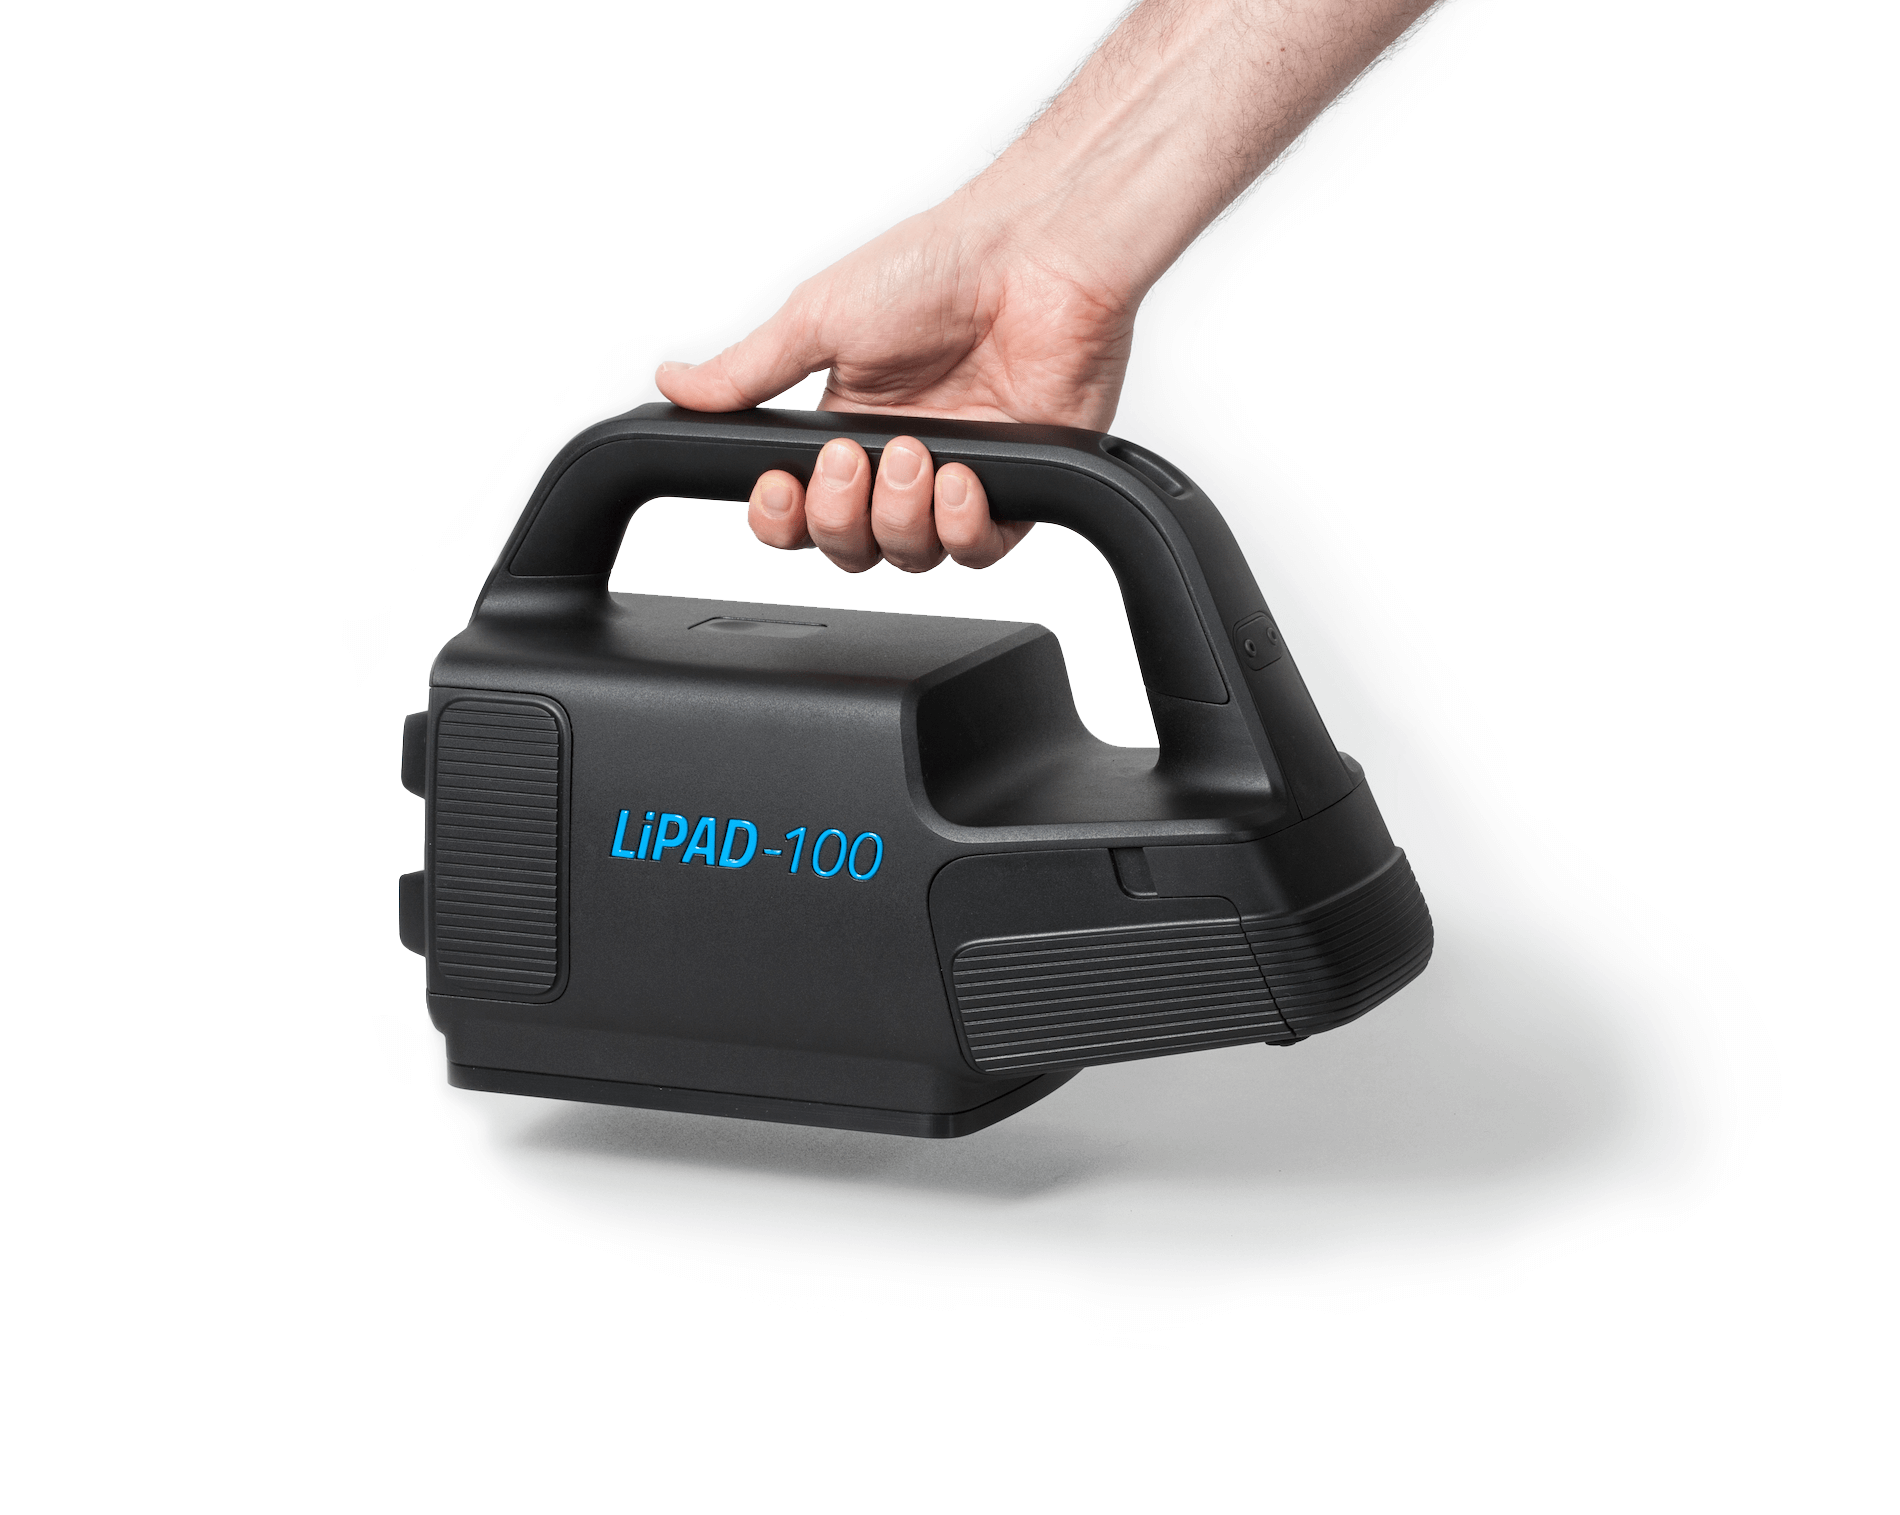 The measuring device LiPAD®-100 by LITEF is held with one hand, from above, into the picture.